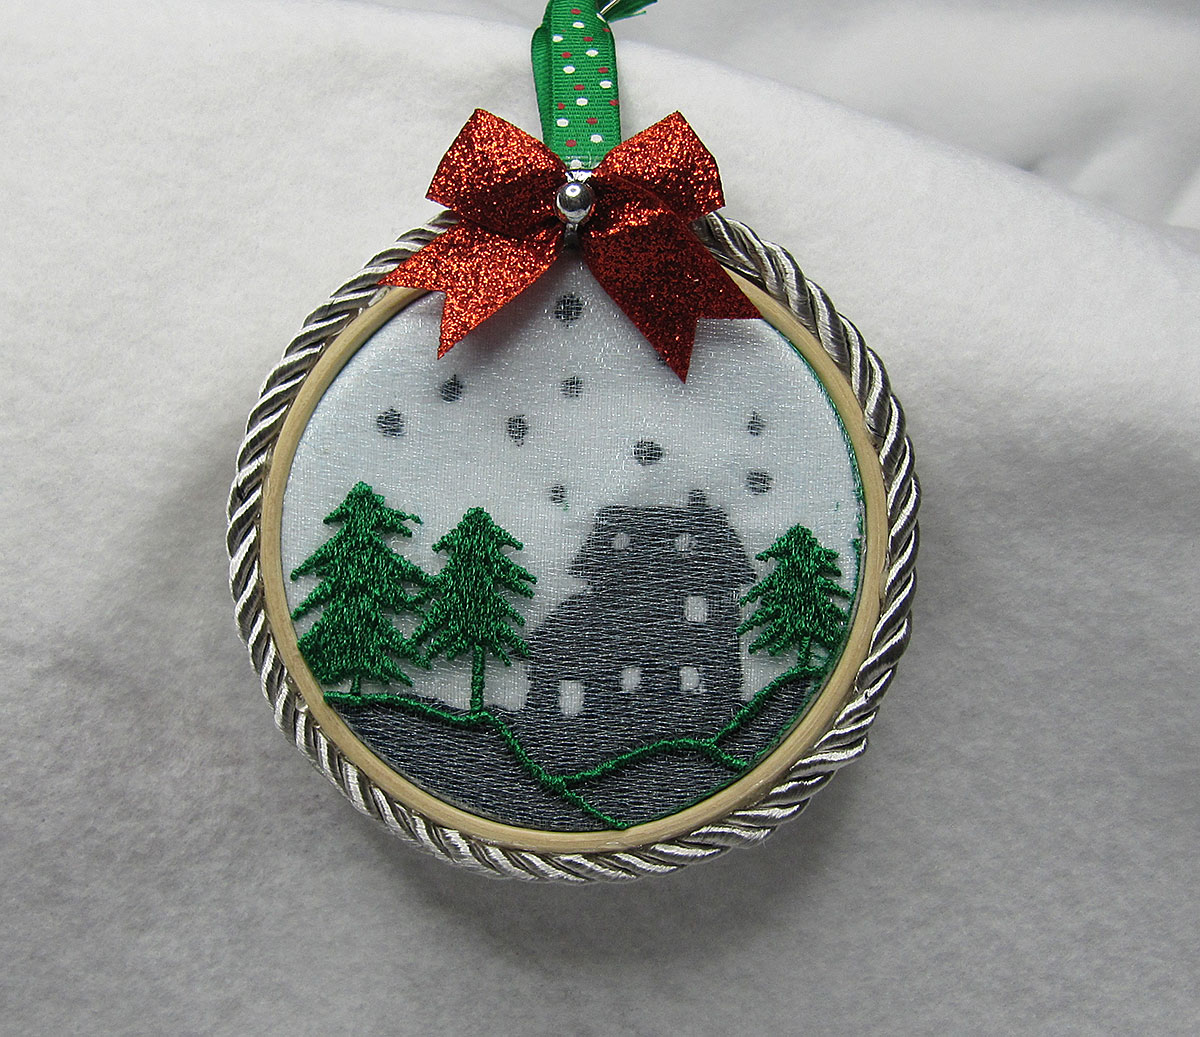 Christmas Dimension Ornament Trees with House Embroidery Design